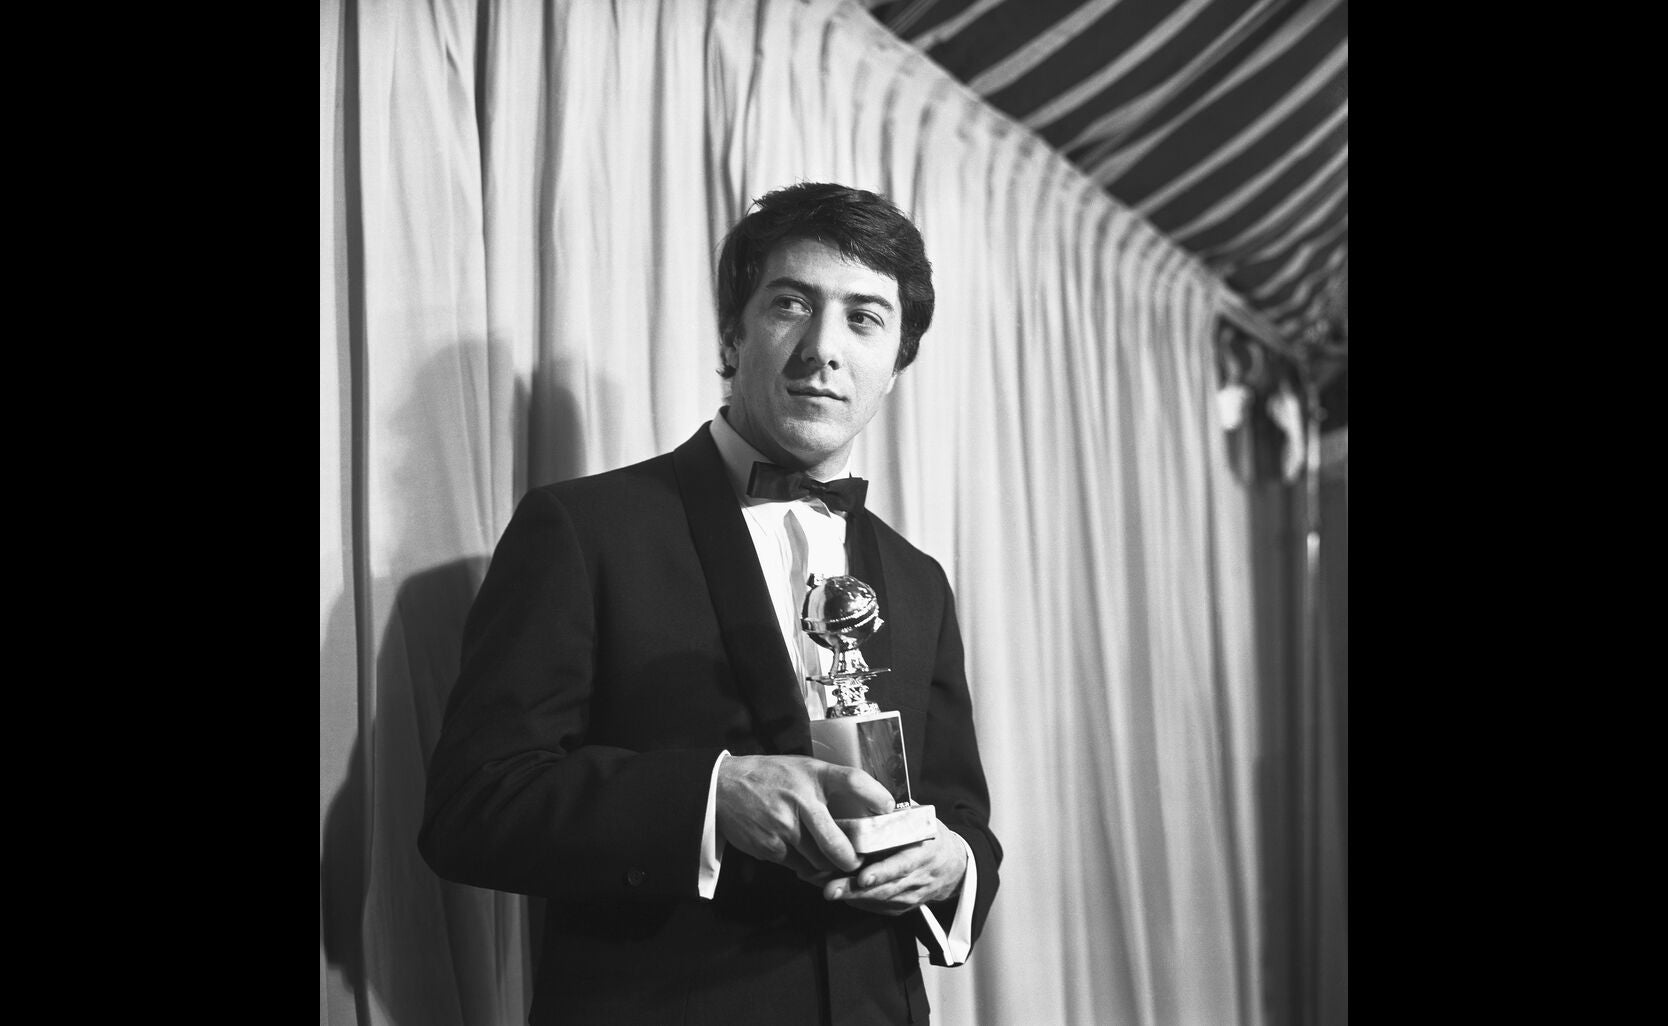 Dustin Hoffman and his Golden Globe for The Graduate, 1968